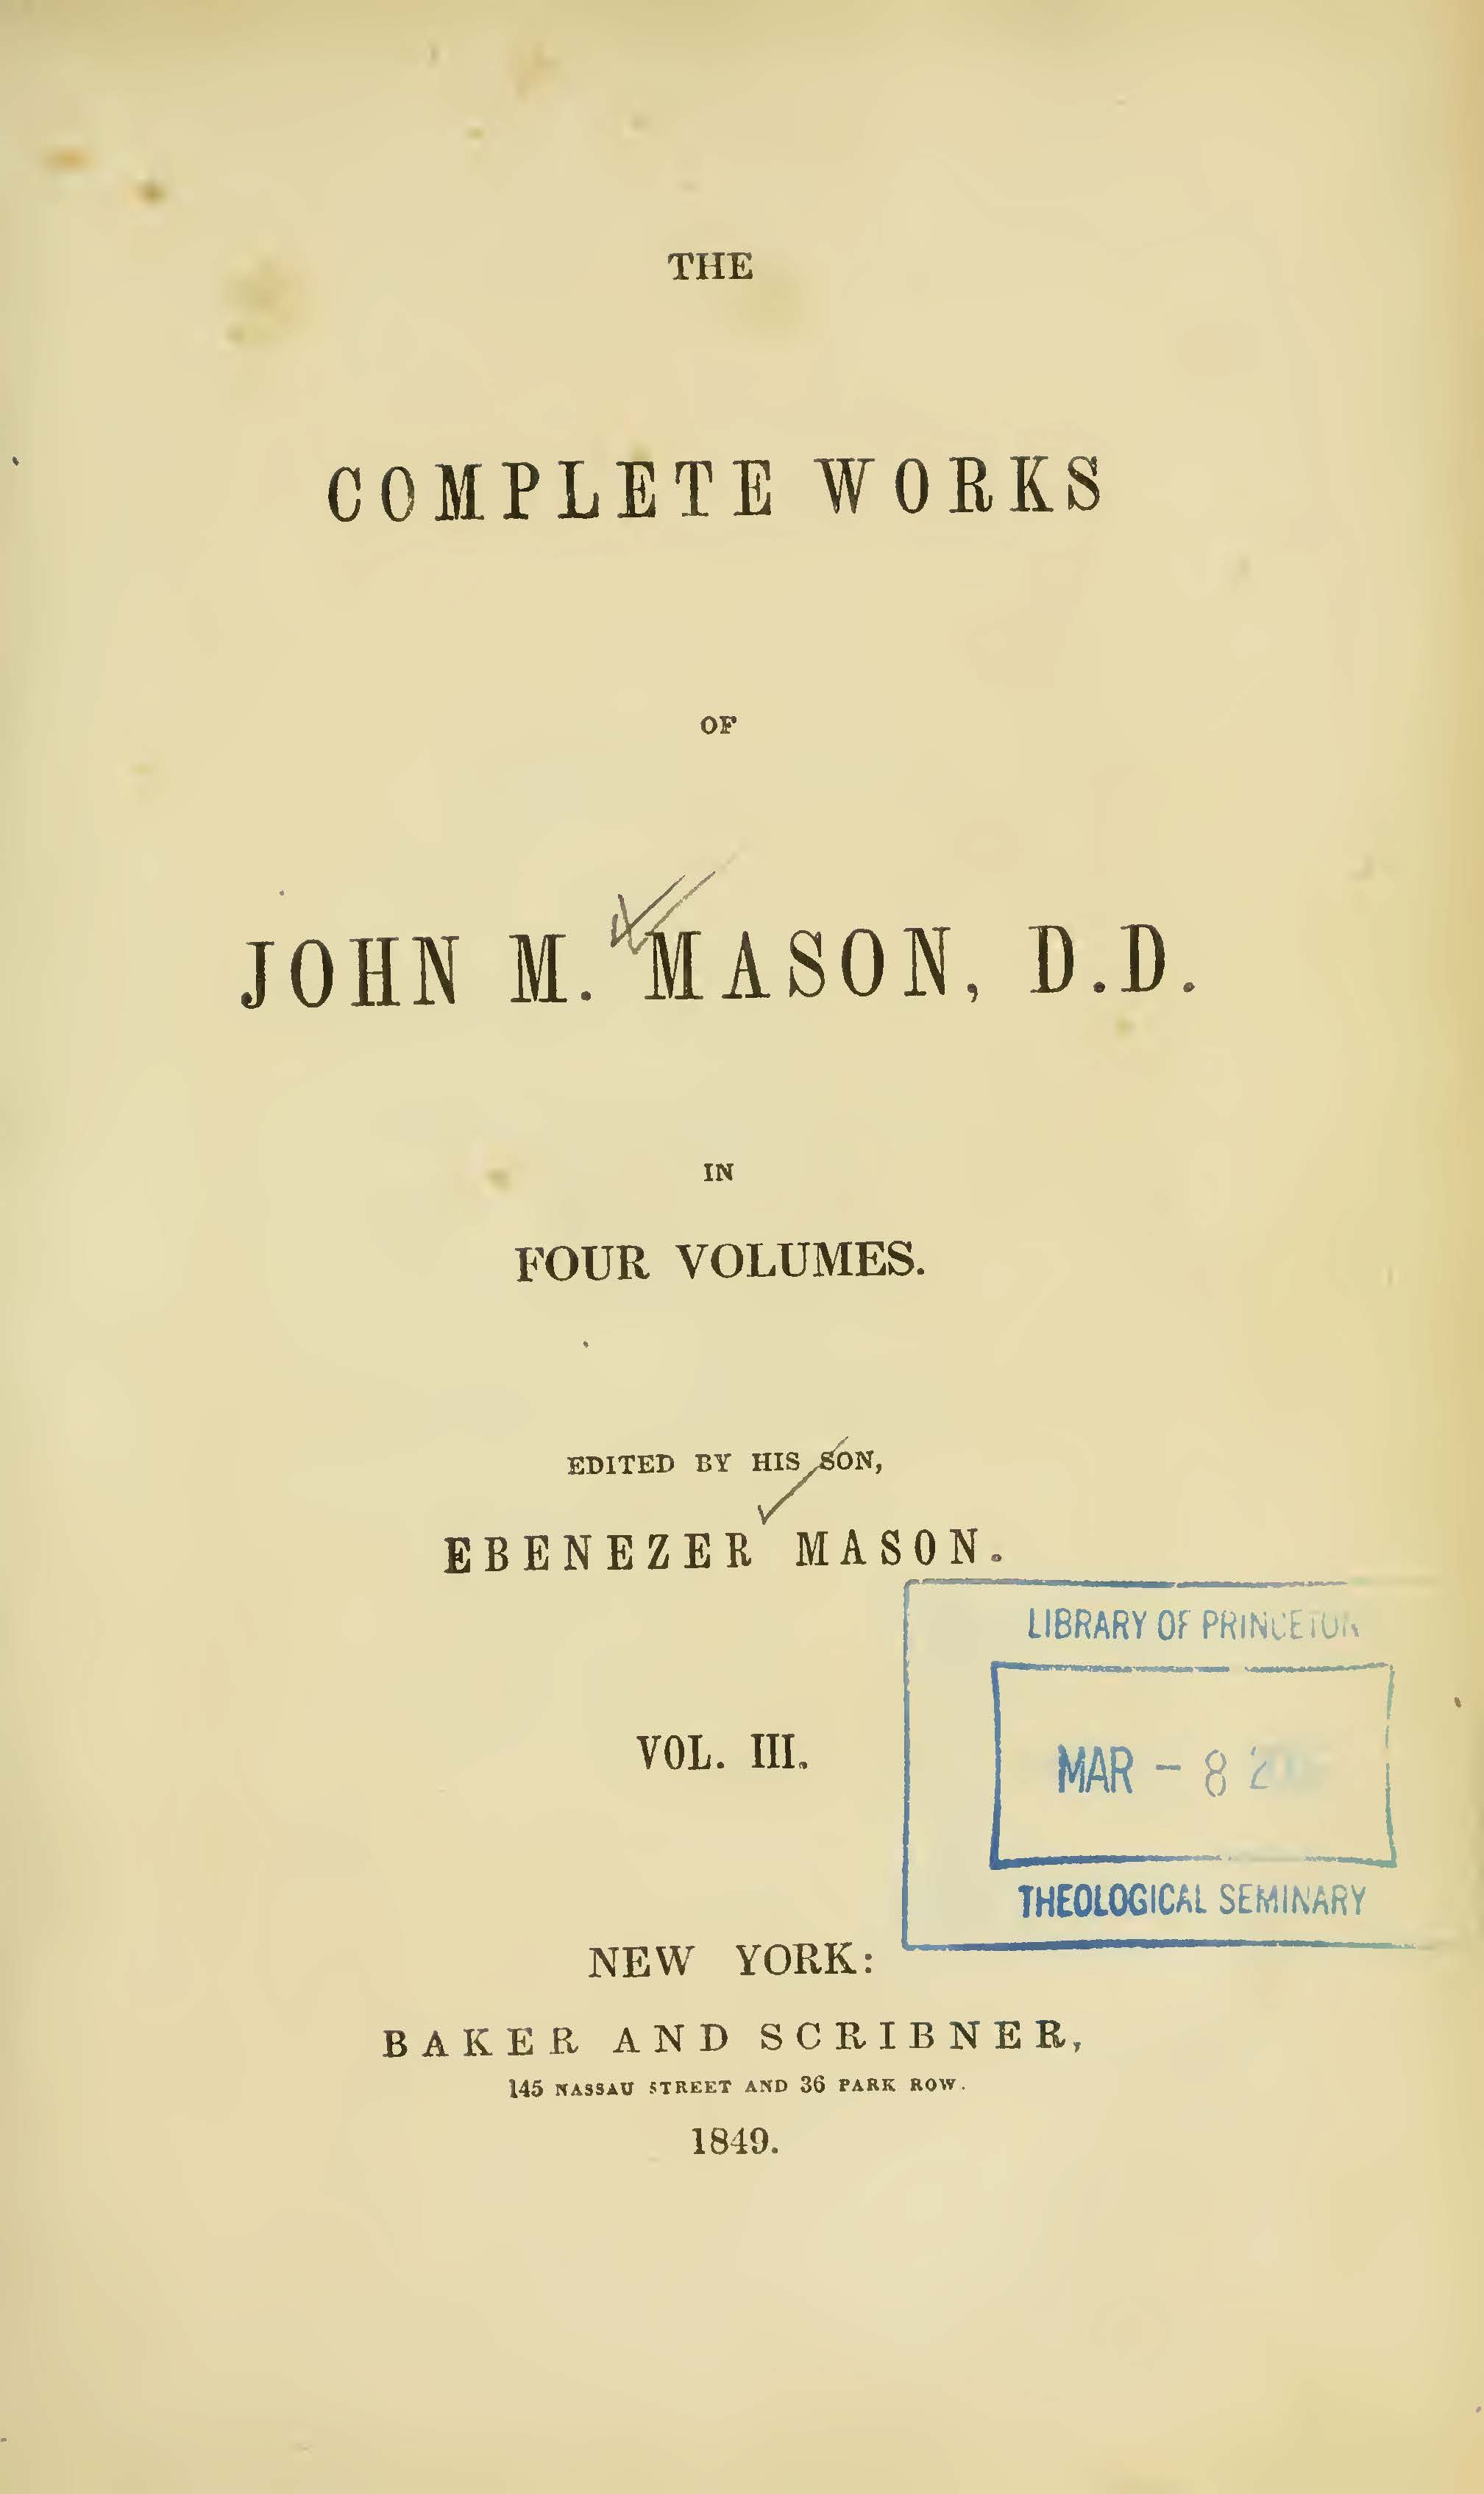 Mason, John Mitchell, The Complete Works of John M. Mason, D.D., Vol. 3 Title Page.jpg